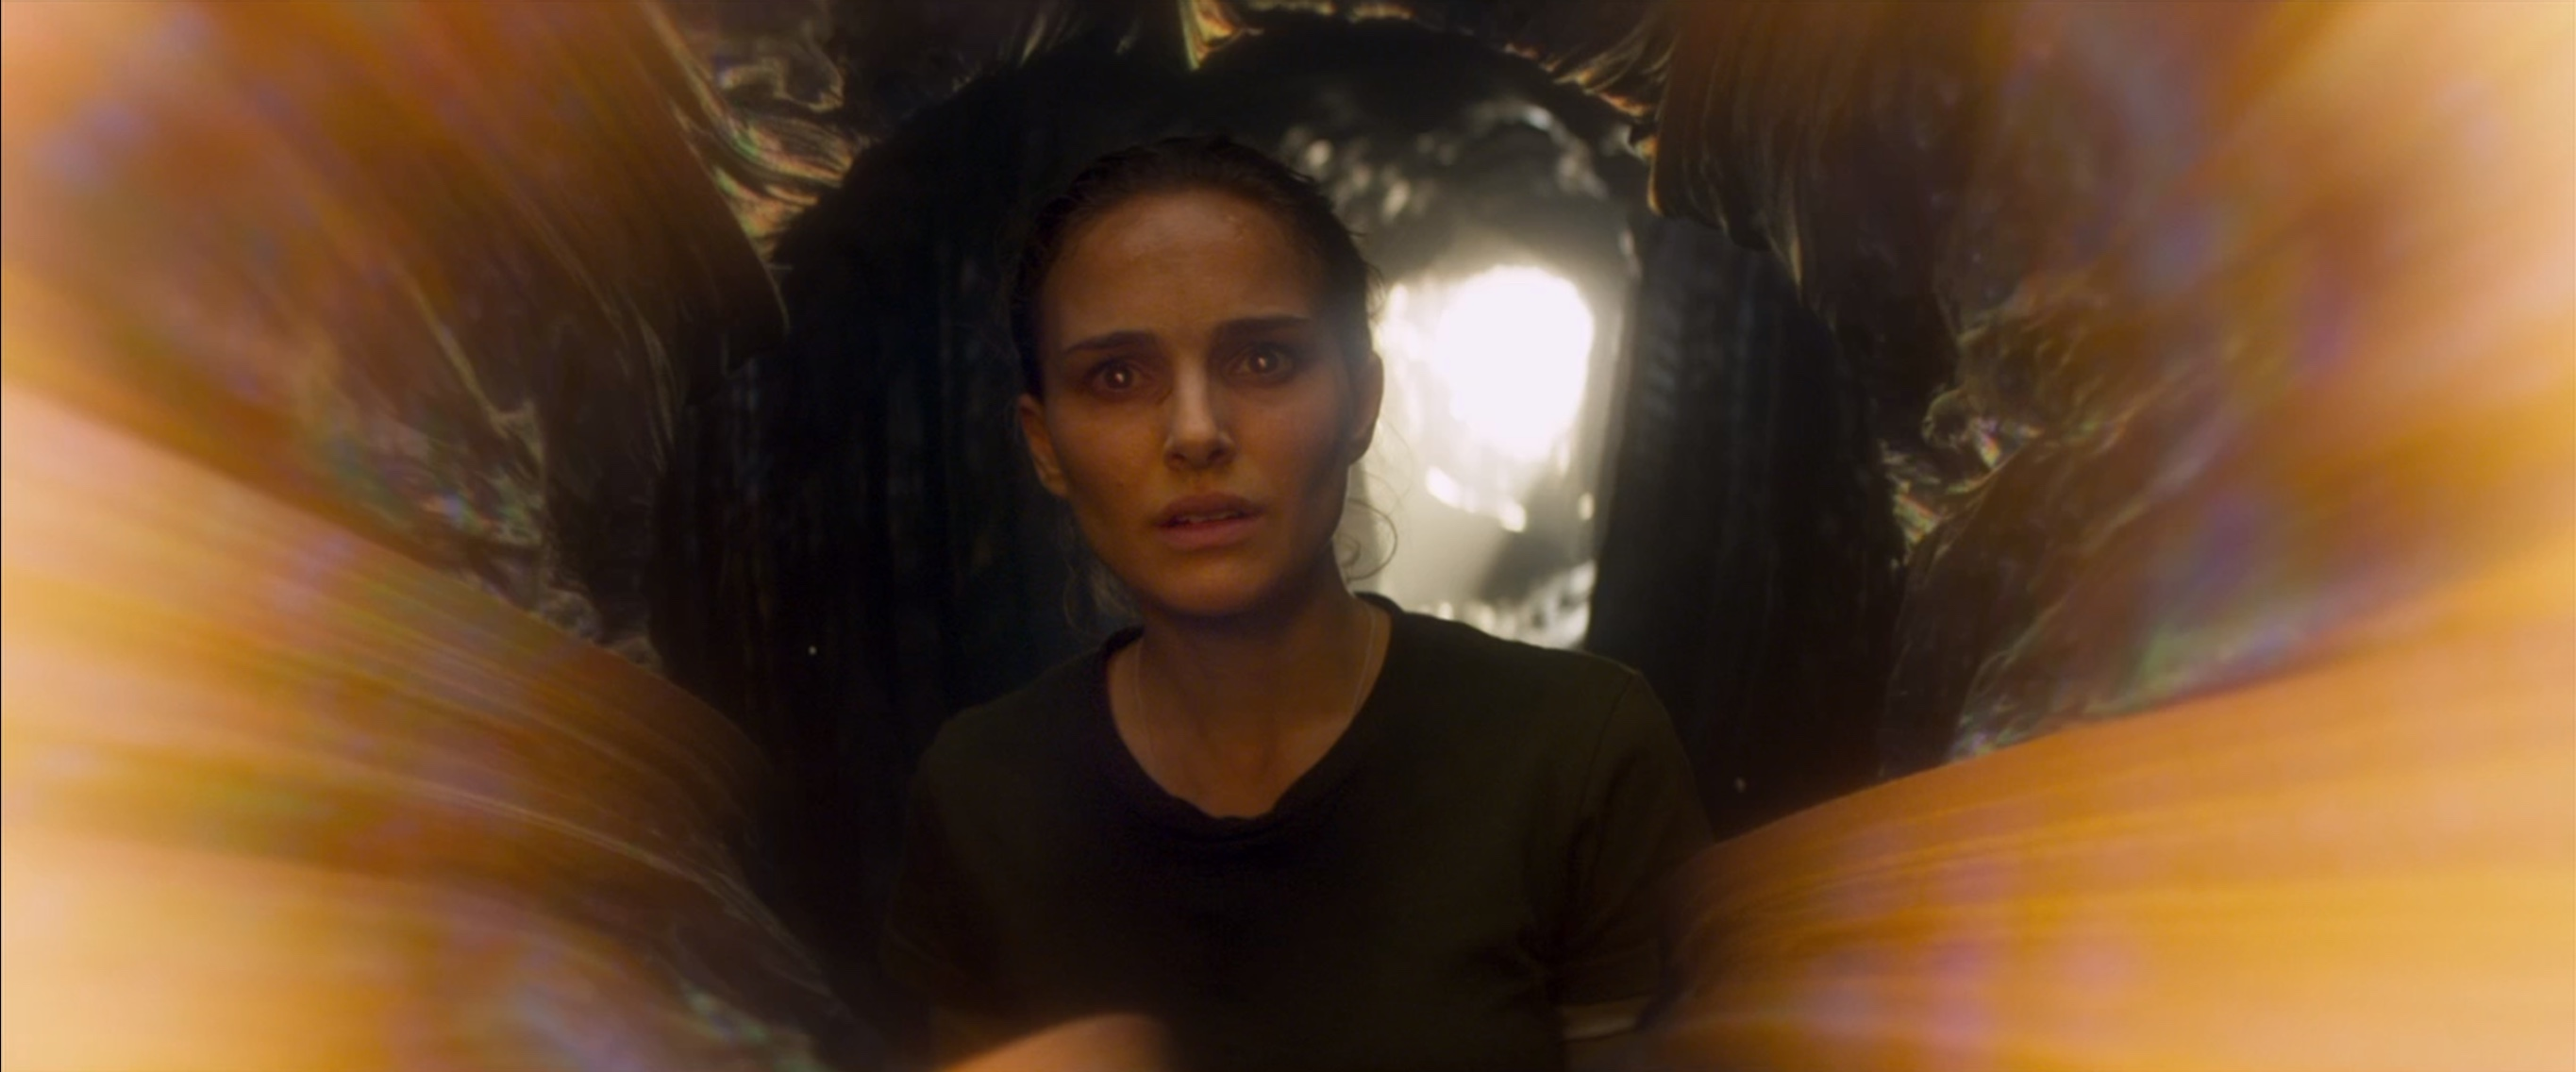 Annihilation Trailer #2: Screen Captures